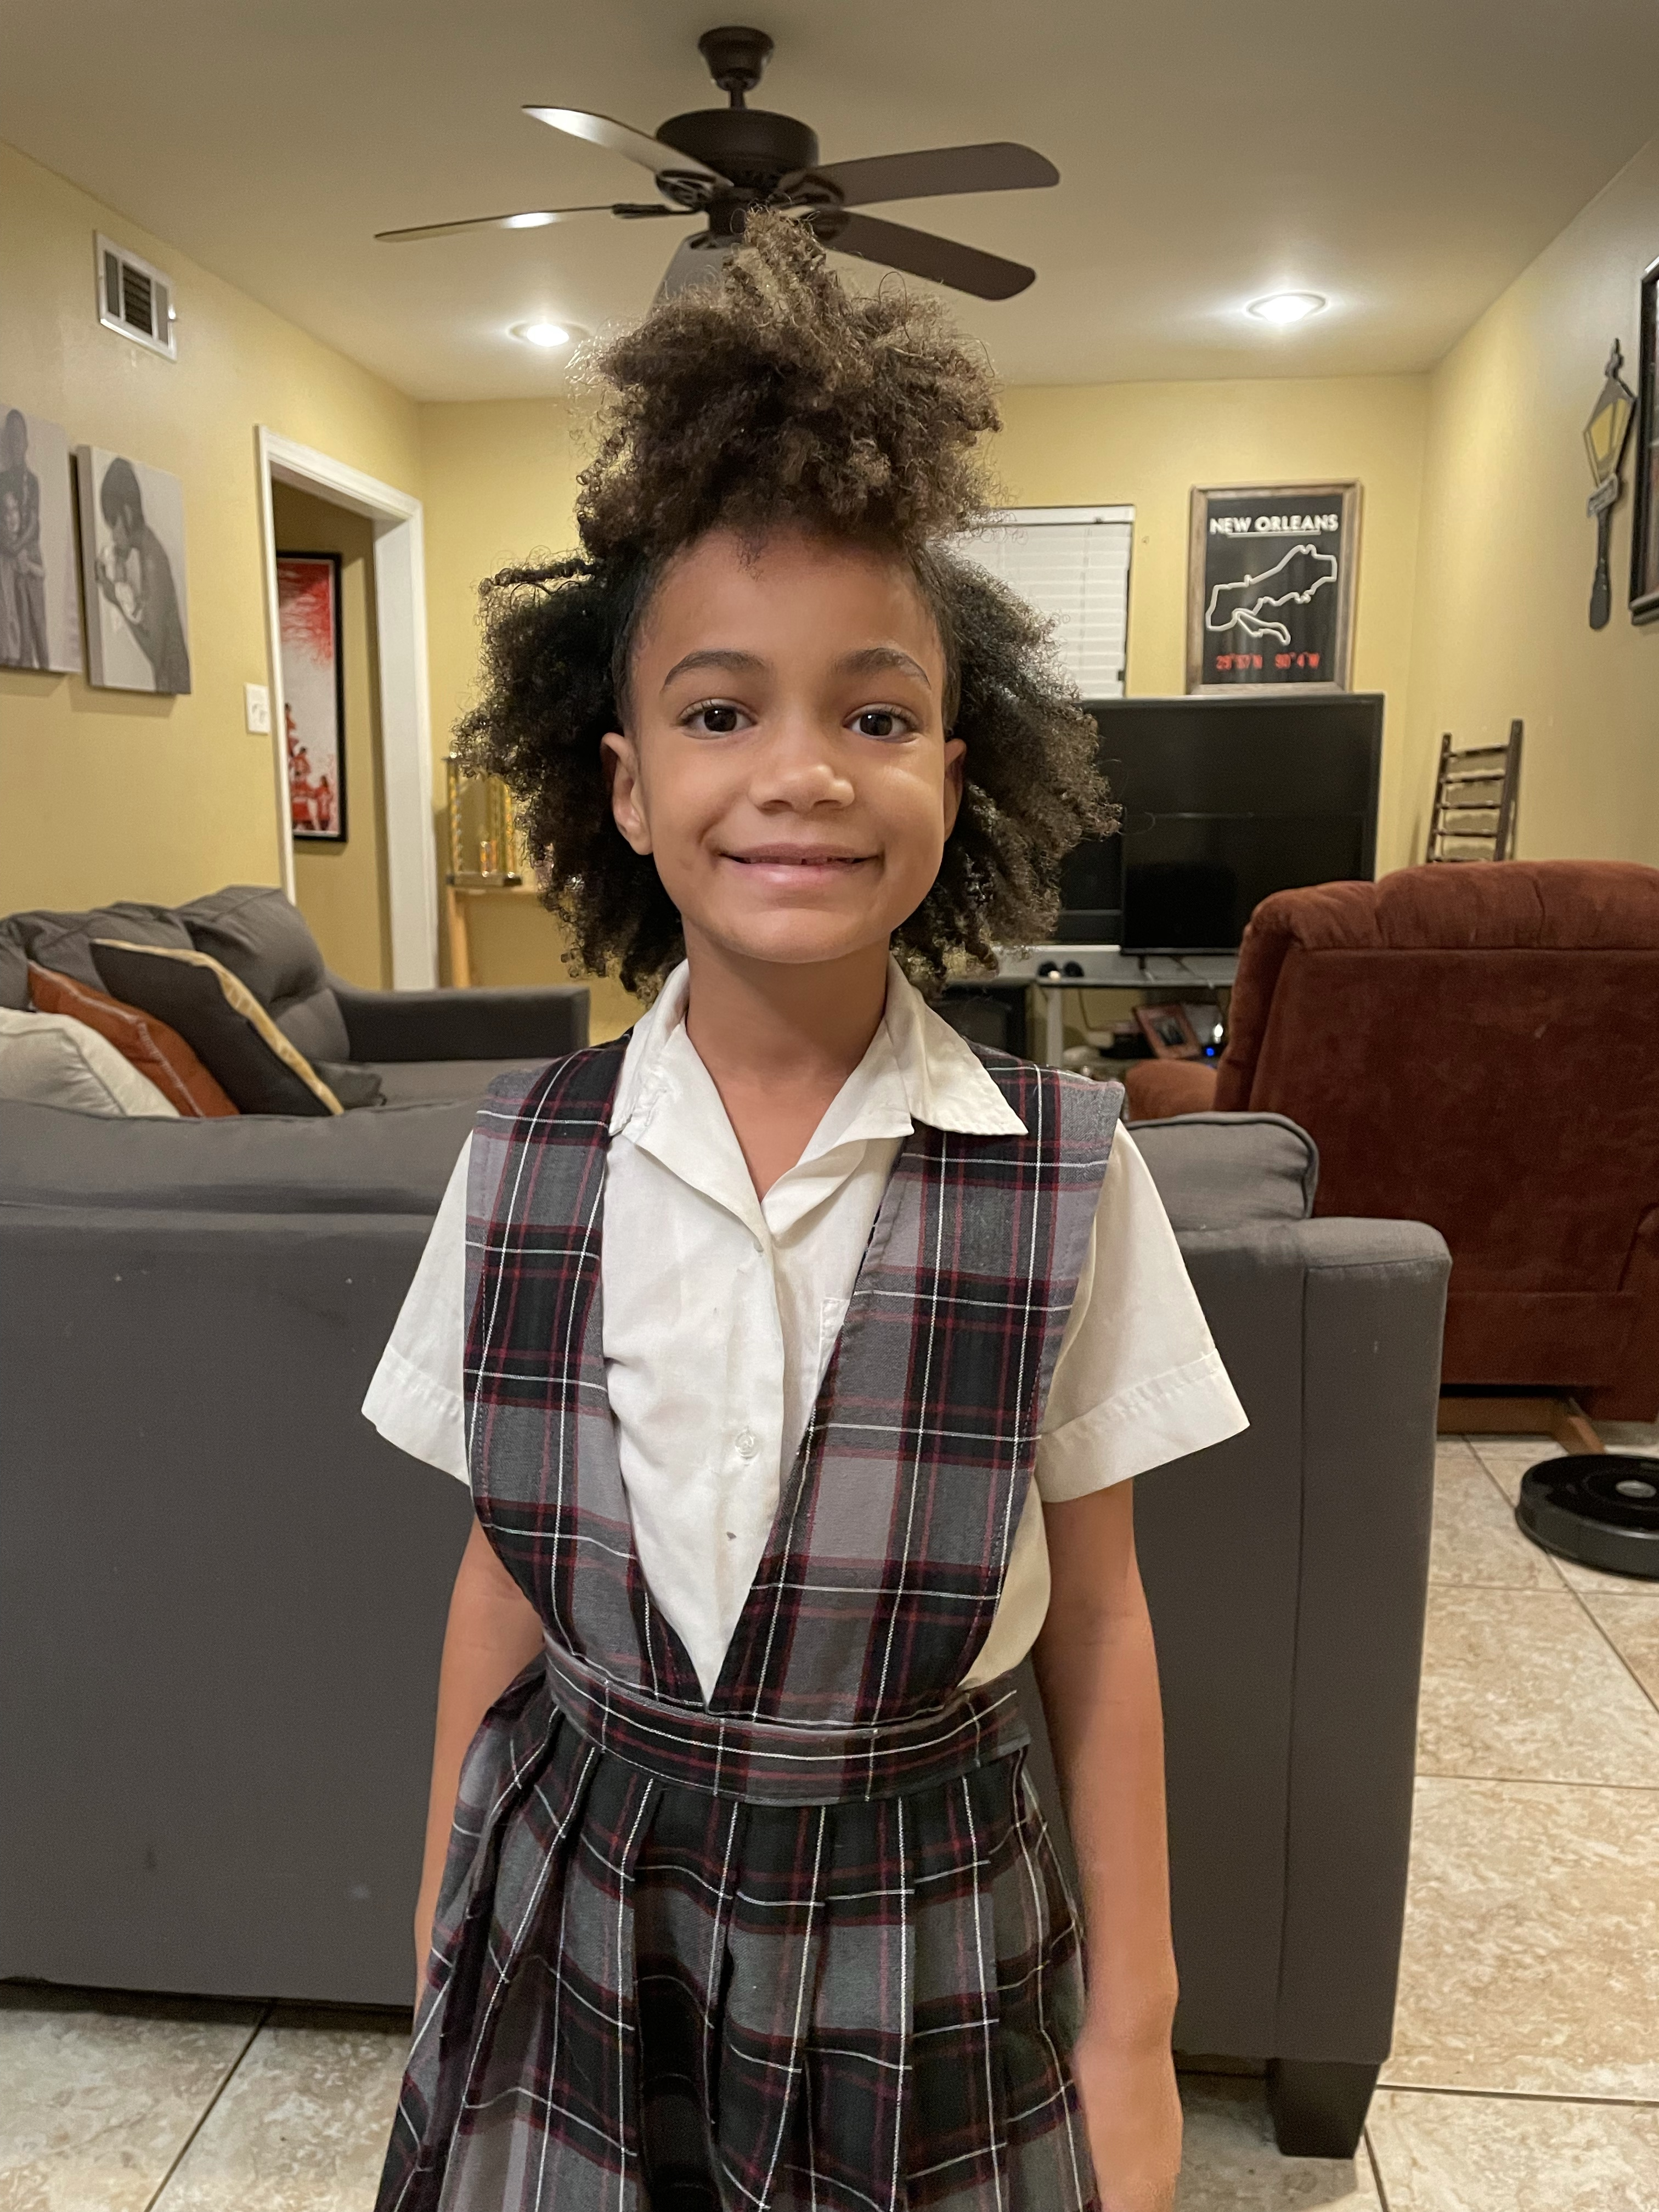 Half puff is an easy natural hair style for kids   #kidsnaturalhair #naturalhairforkids #naturalhairstyles #curlyhairstyles #curlyhairstylesforkids